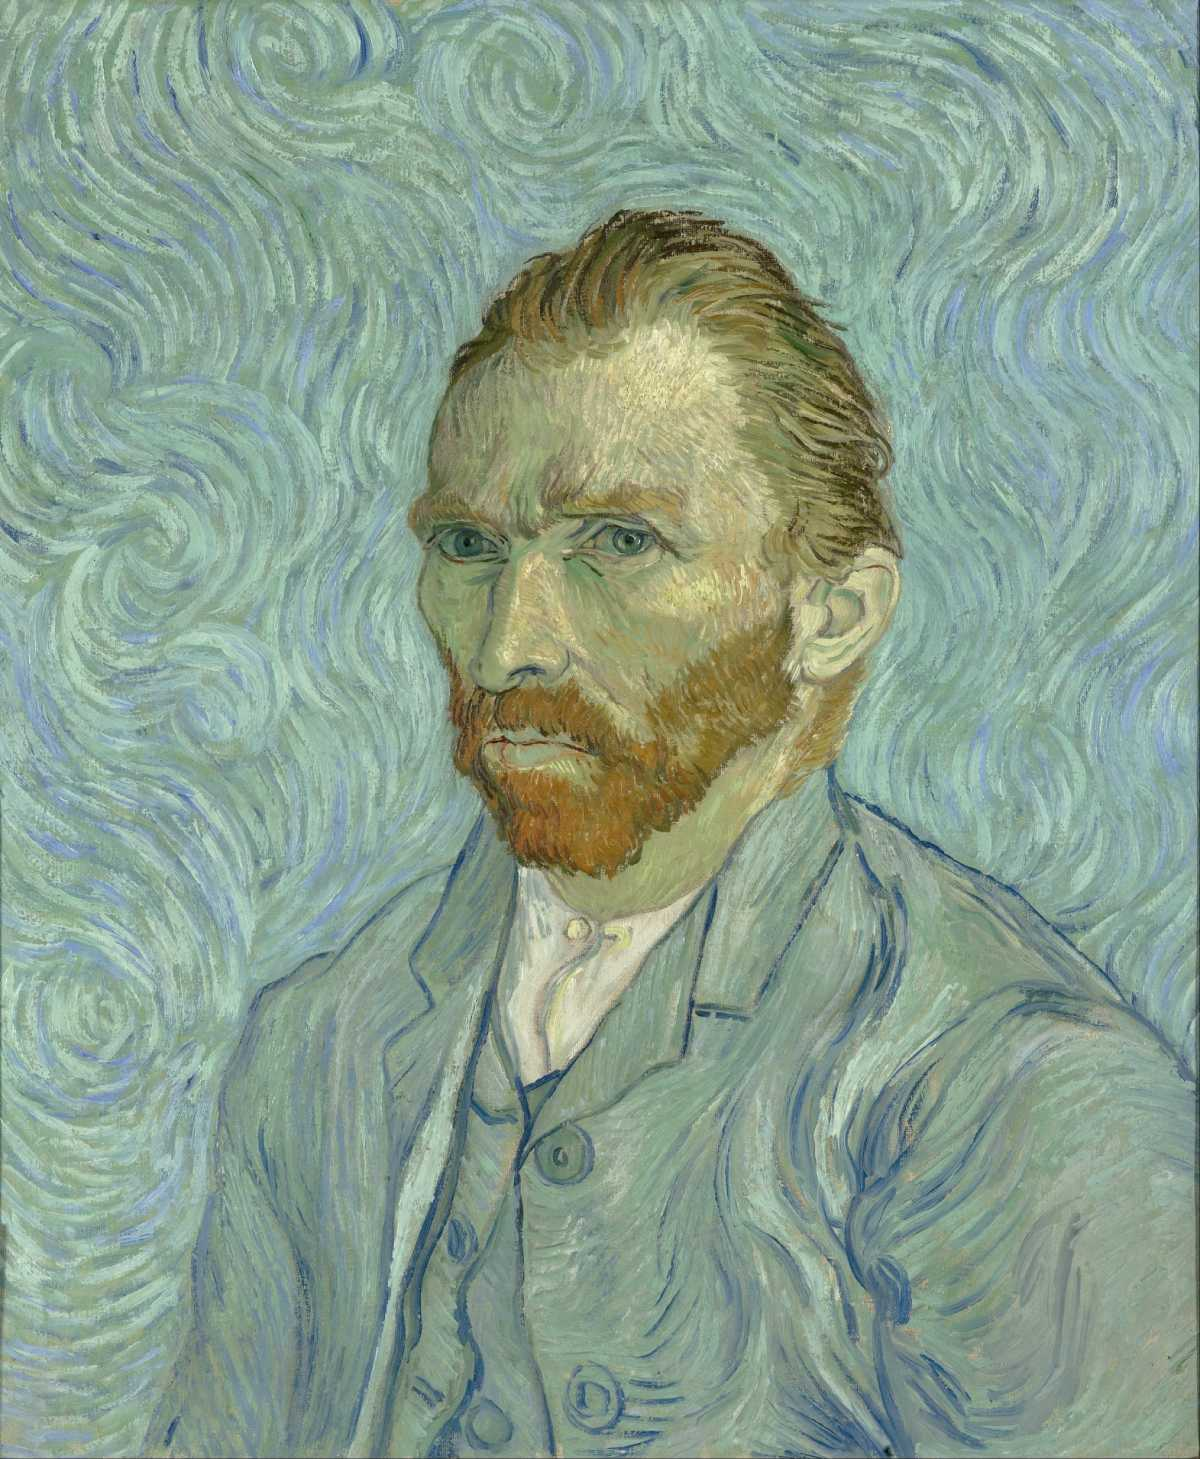 'Self portrait', Van Gogh | Art-Pie